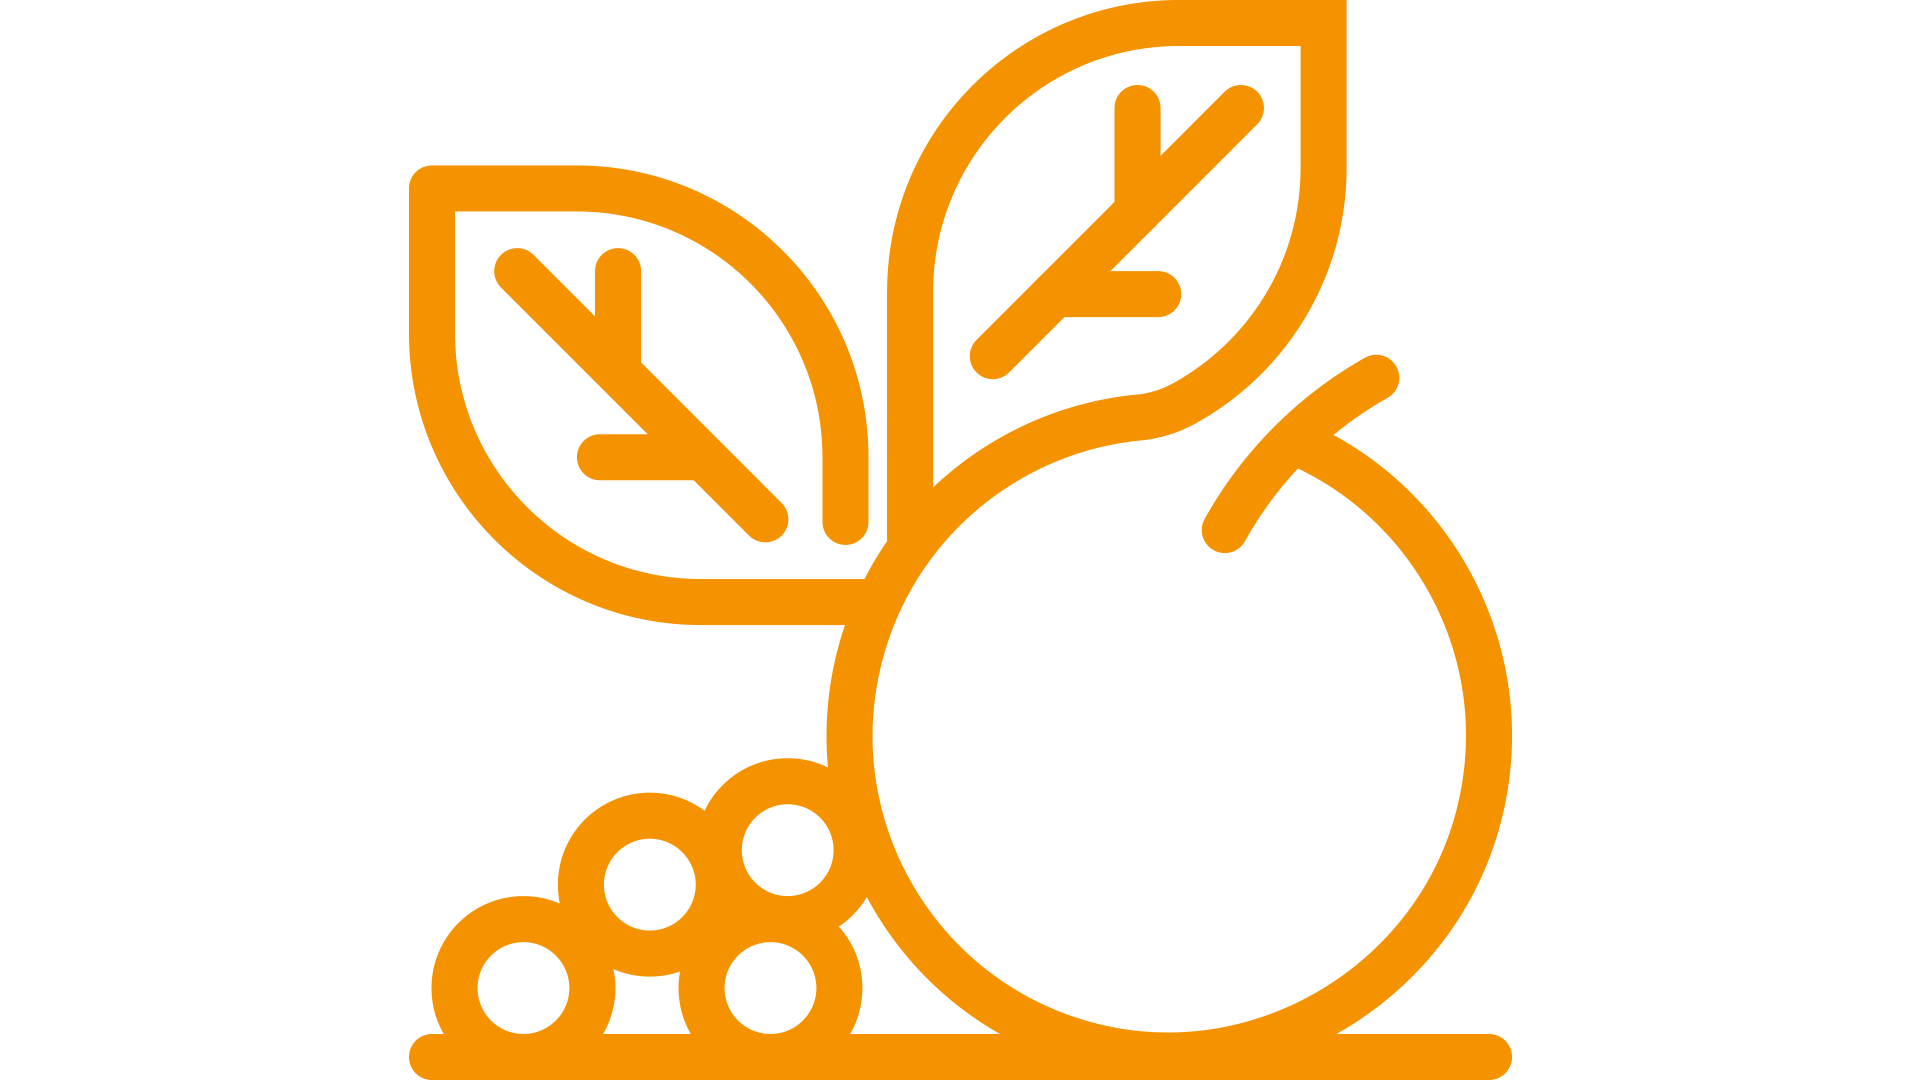 pictogram of a grocery symbol